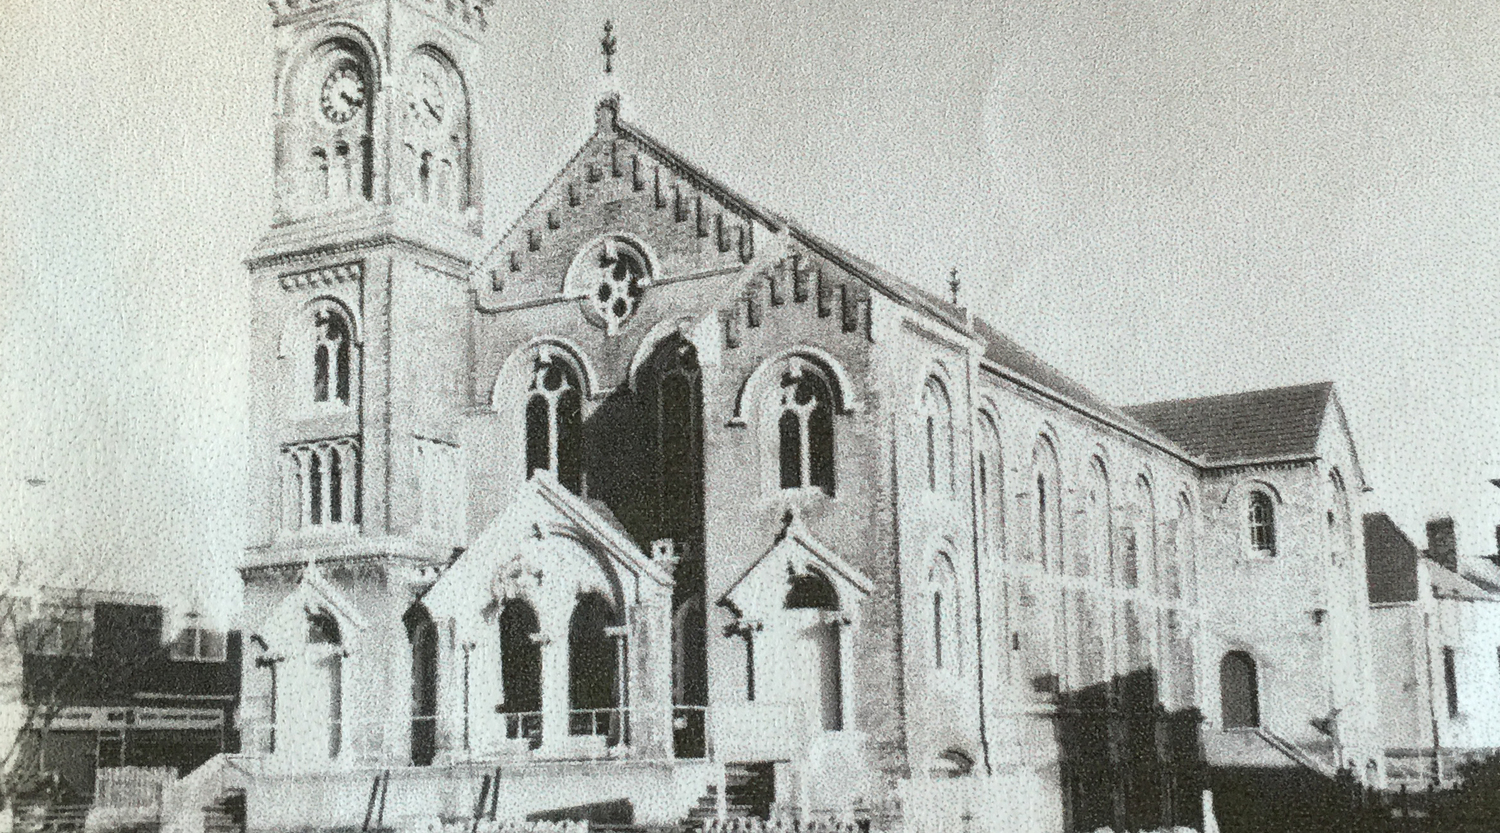 An early photo of the church